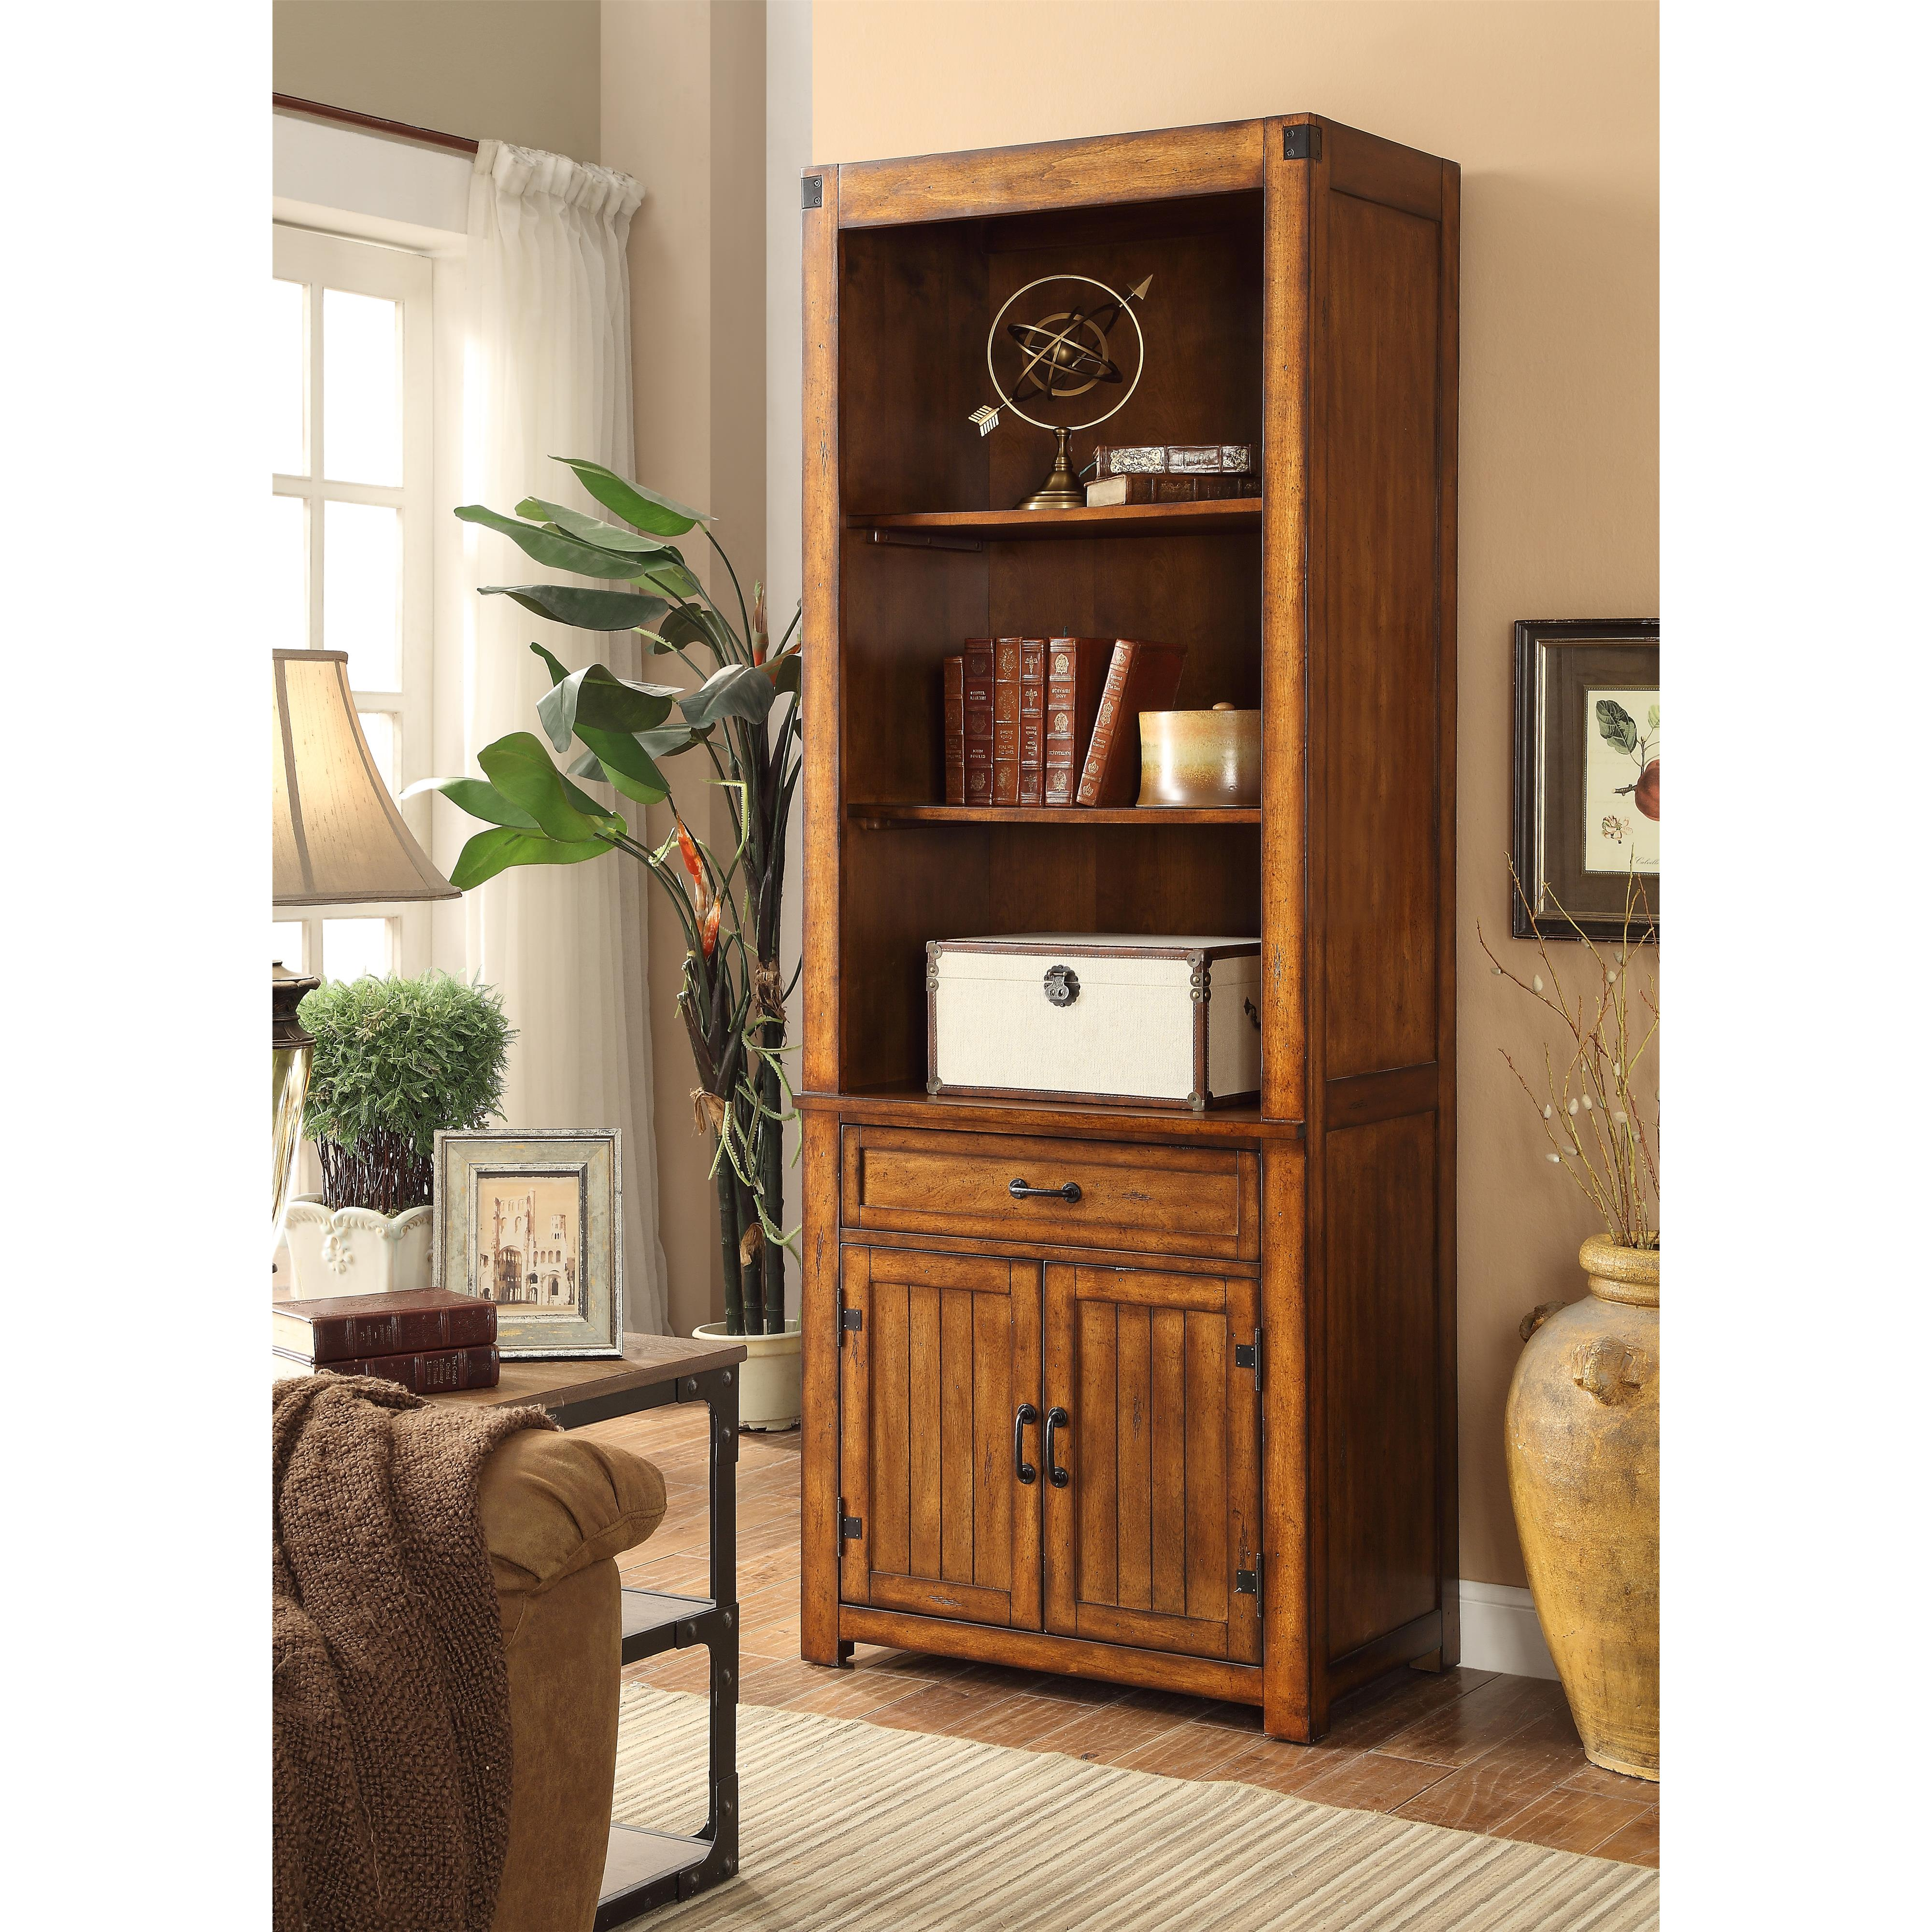 Legends Furniture Industrial Collection Industrial Bookcase Pier - Item Number: ZIND-3000